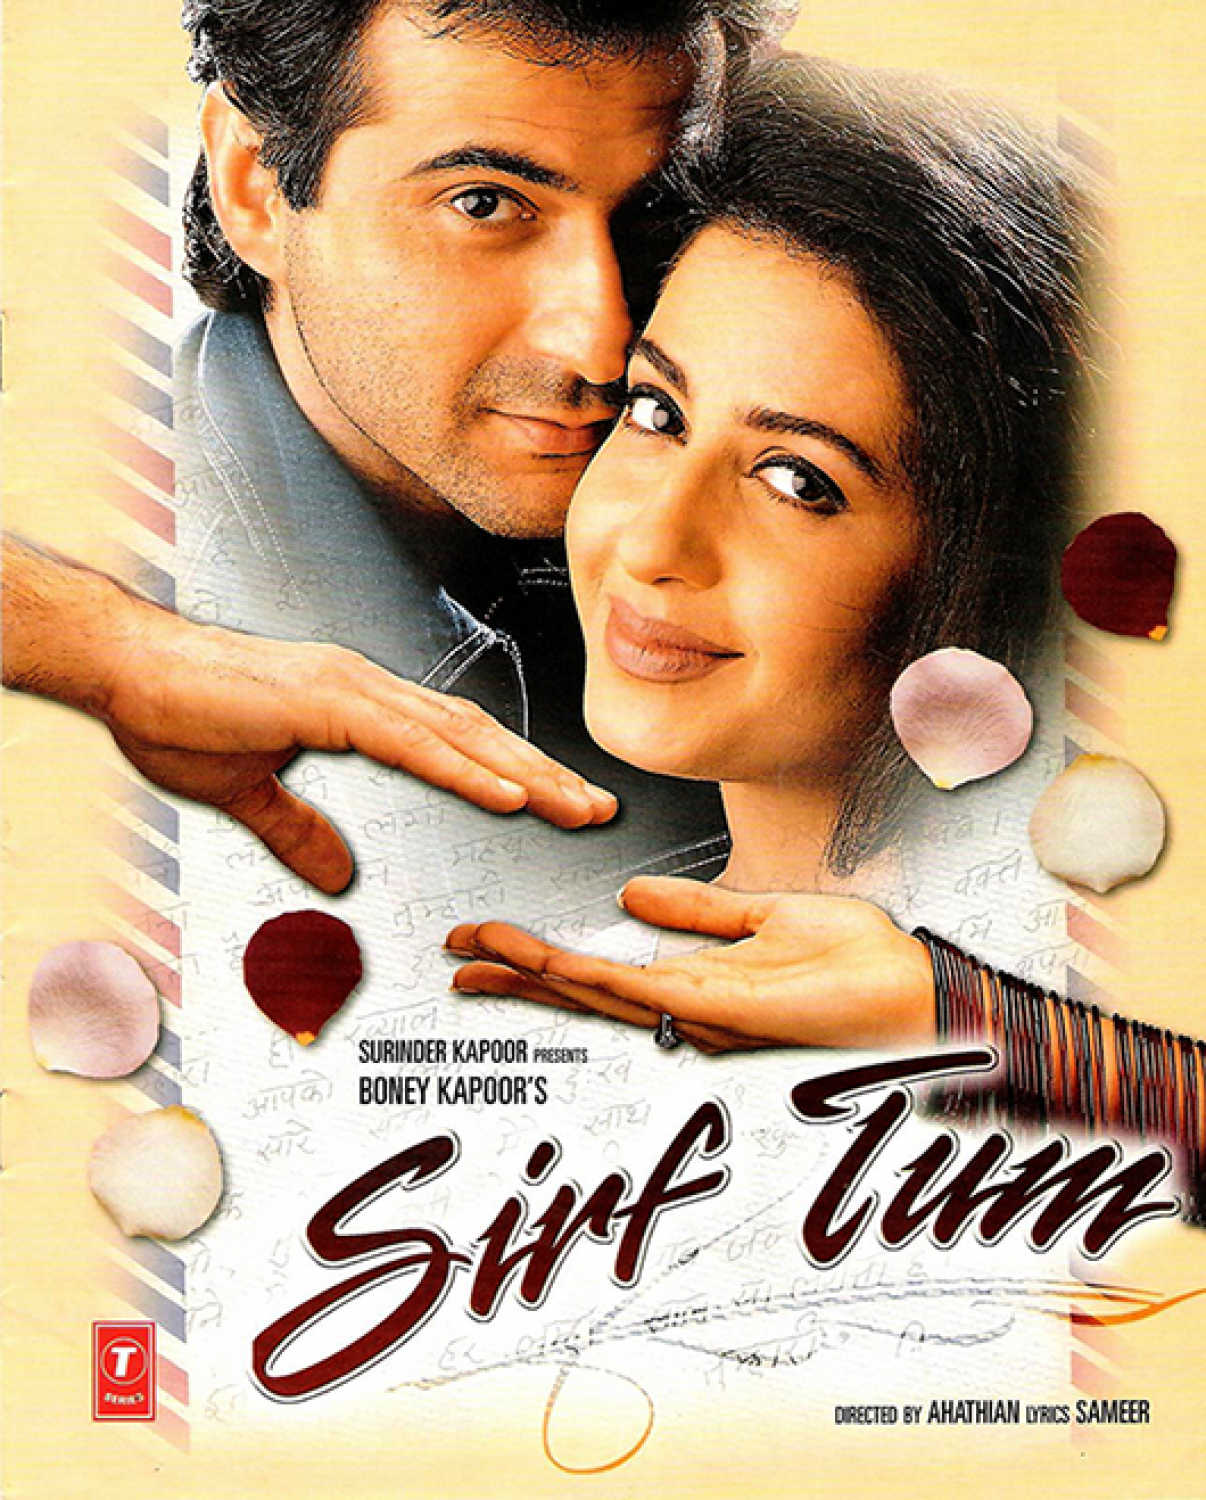 Rohanpreet New Song Pehli Mulakat Download Mp3: Sirf Tum (1999) - Review, Star Cast, News, Photos